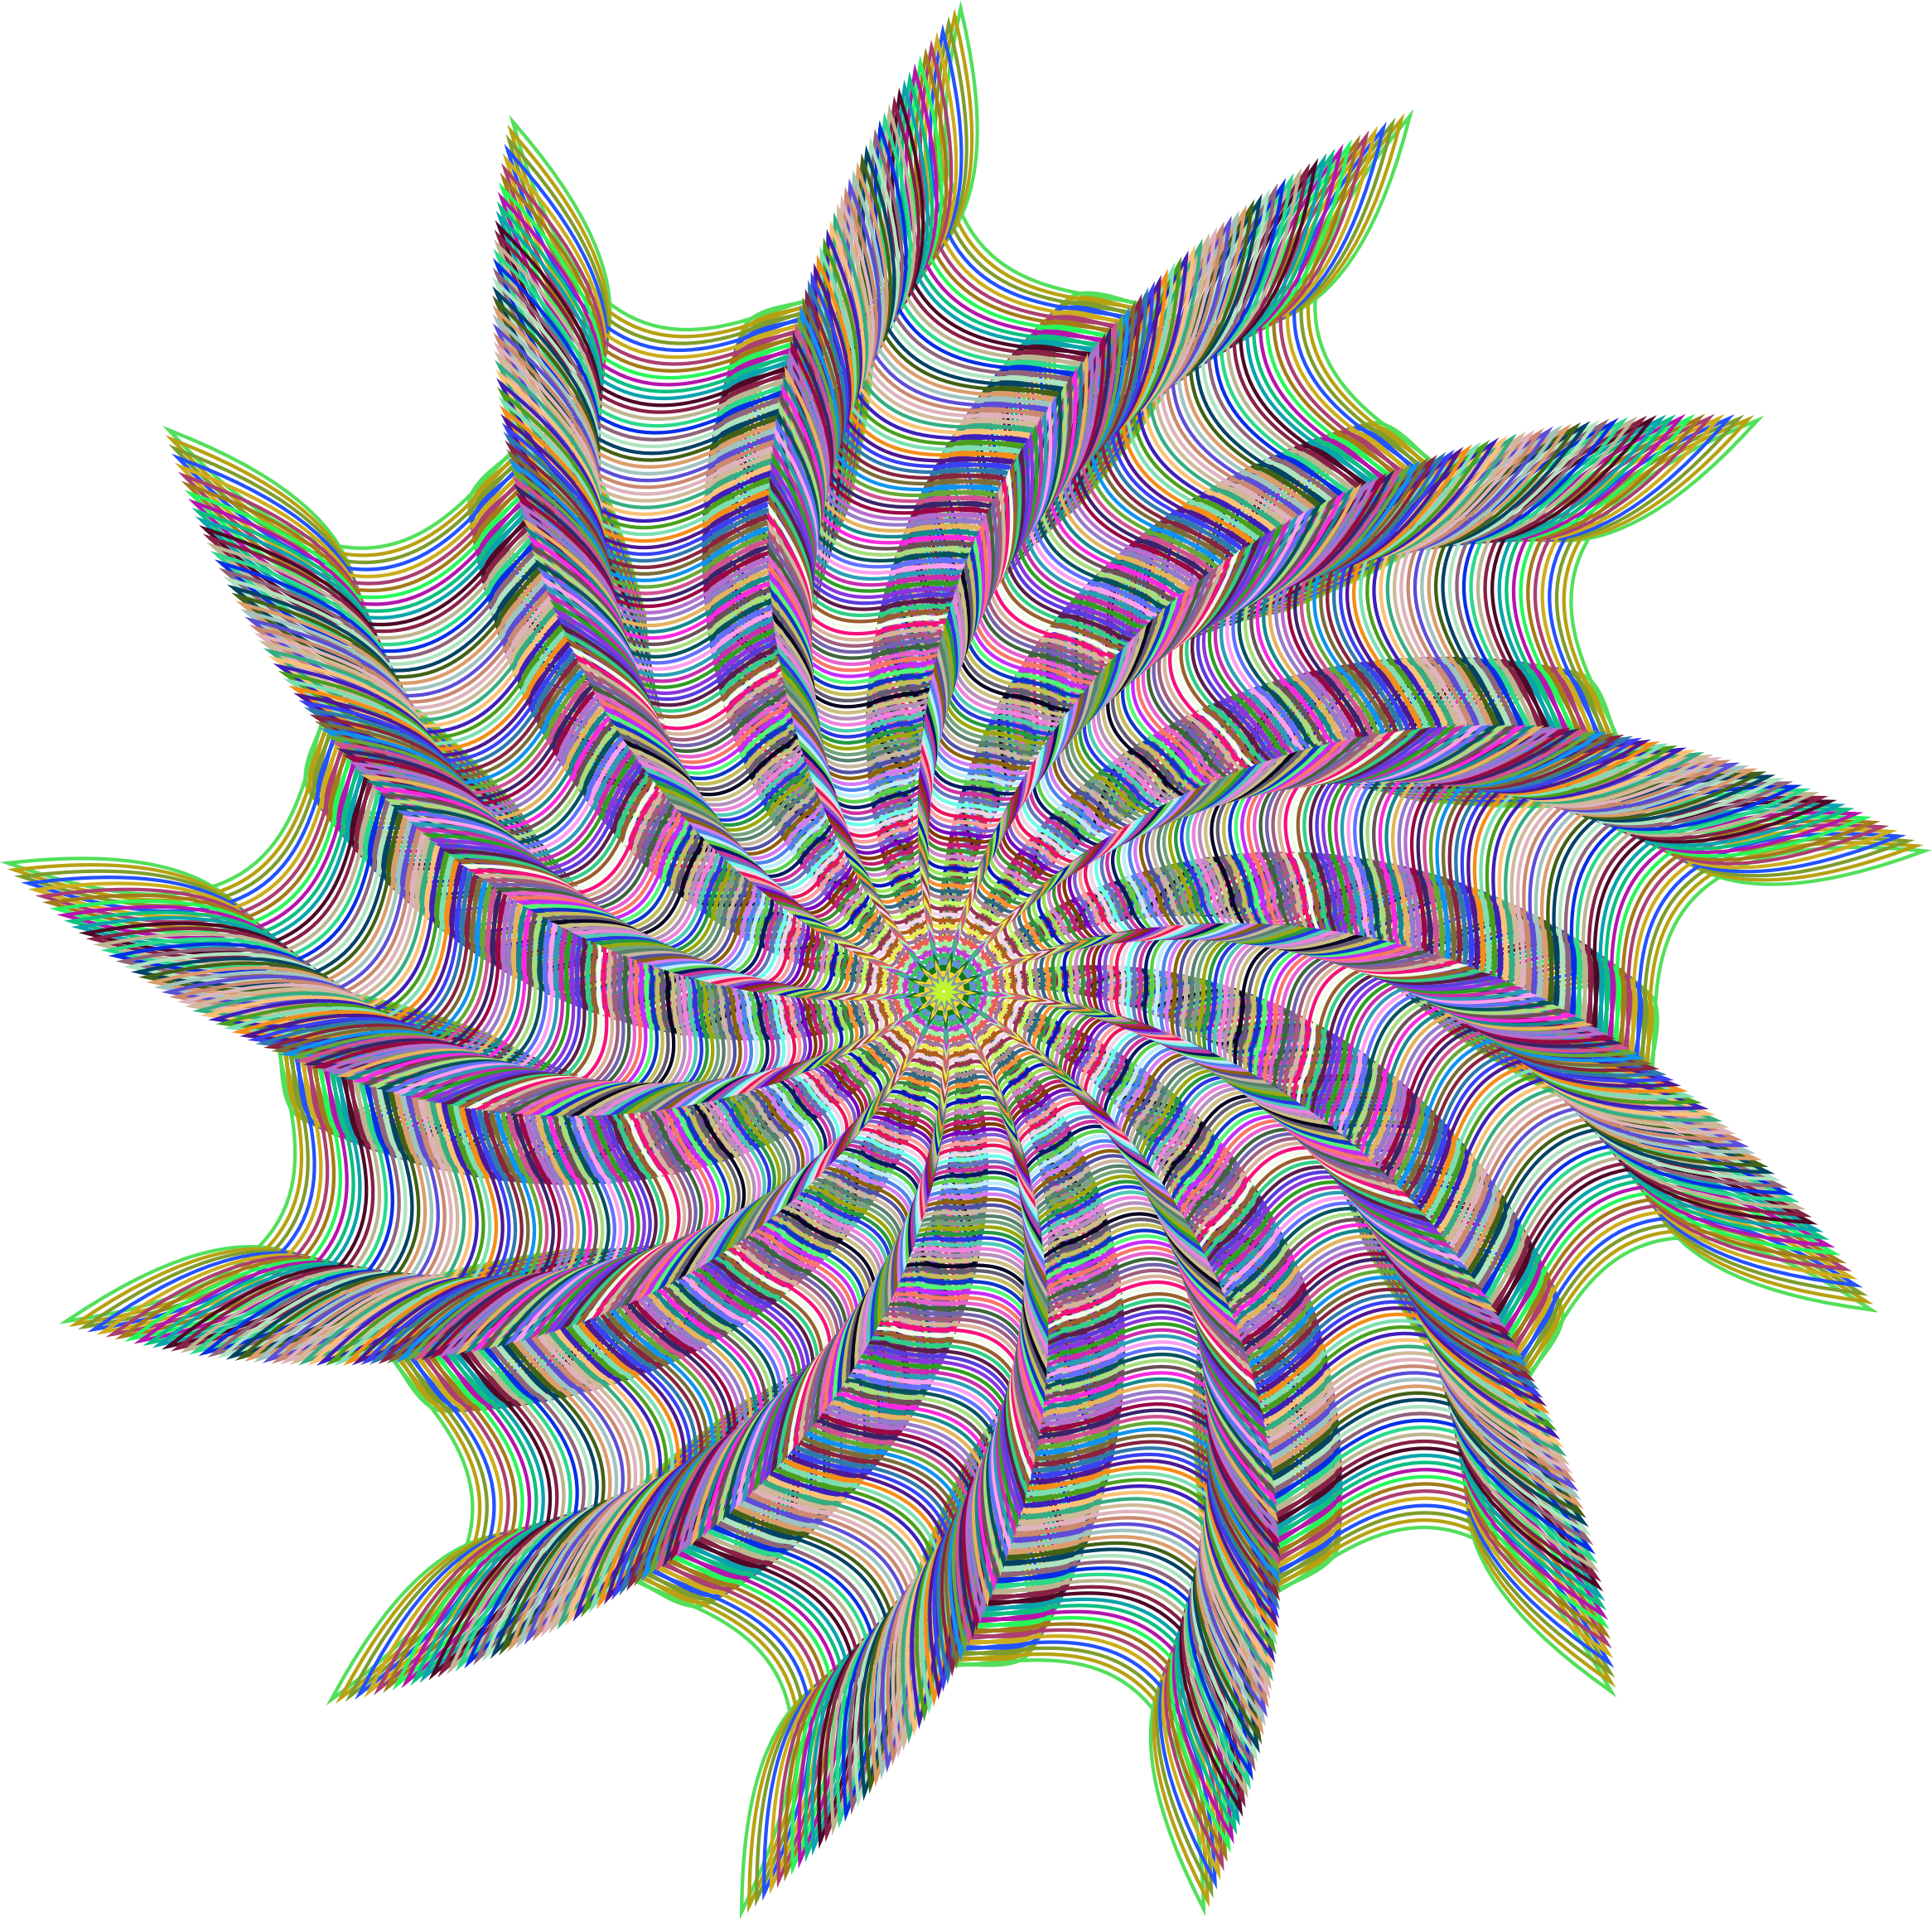 Prismatic Vortex Line Art No Background by GDJ